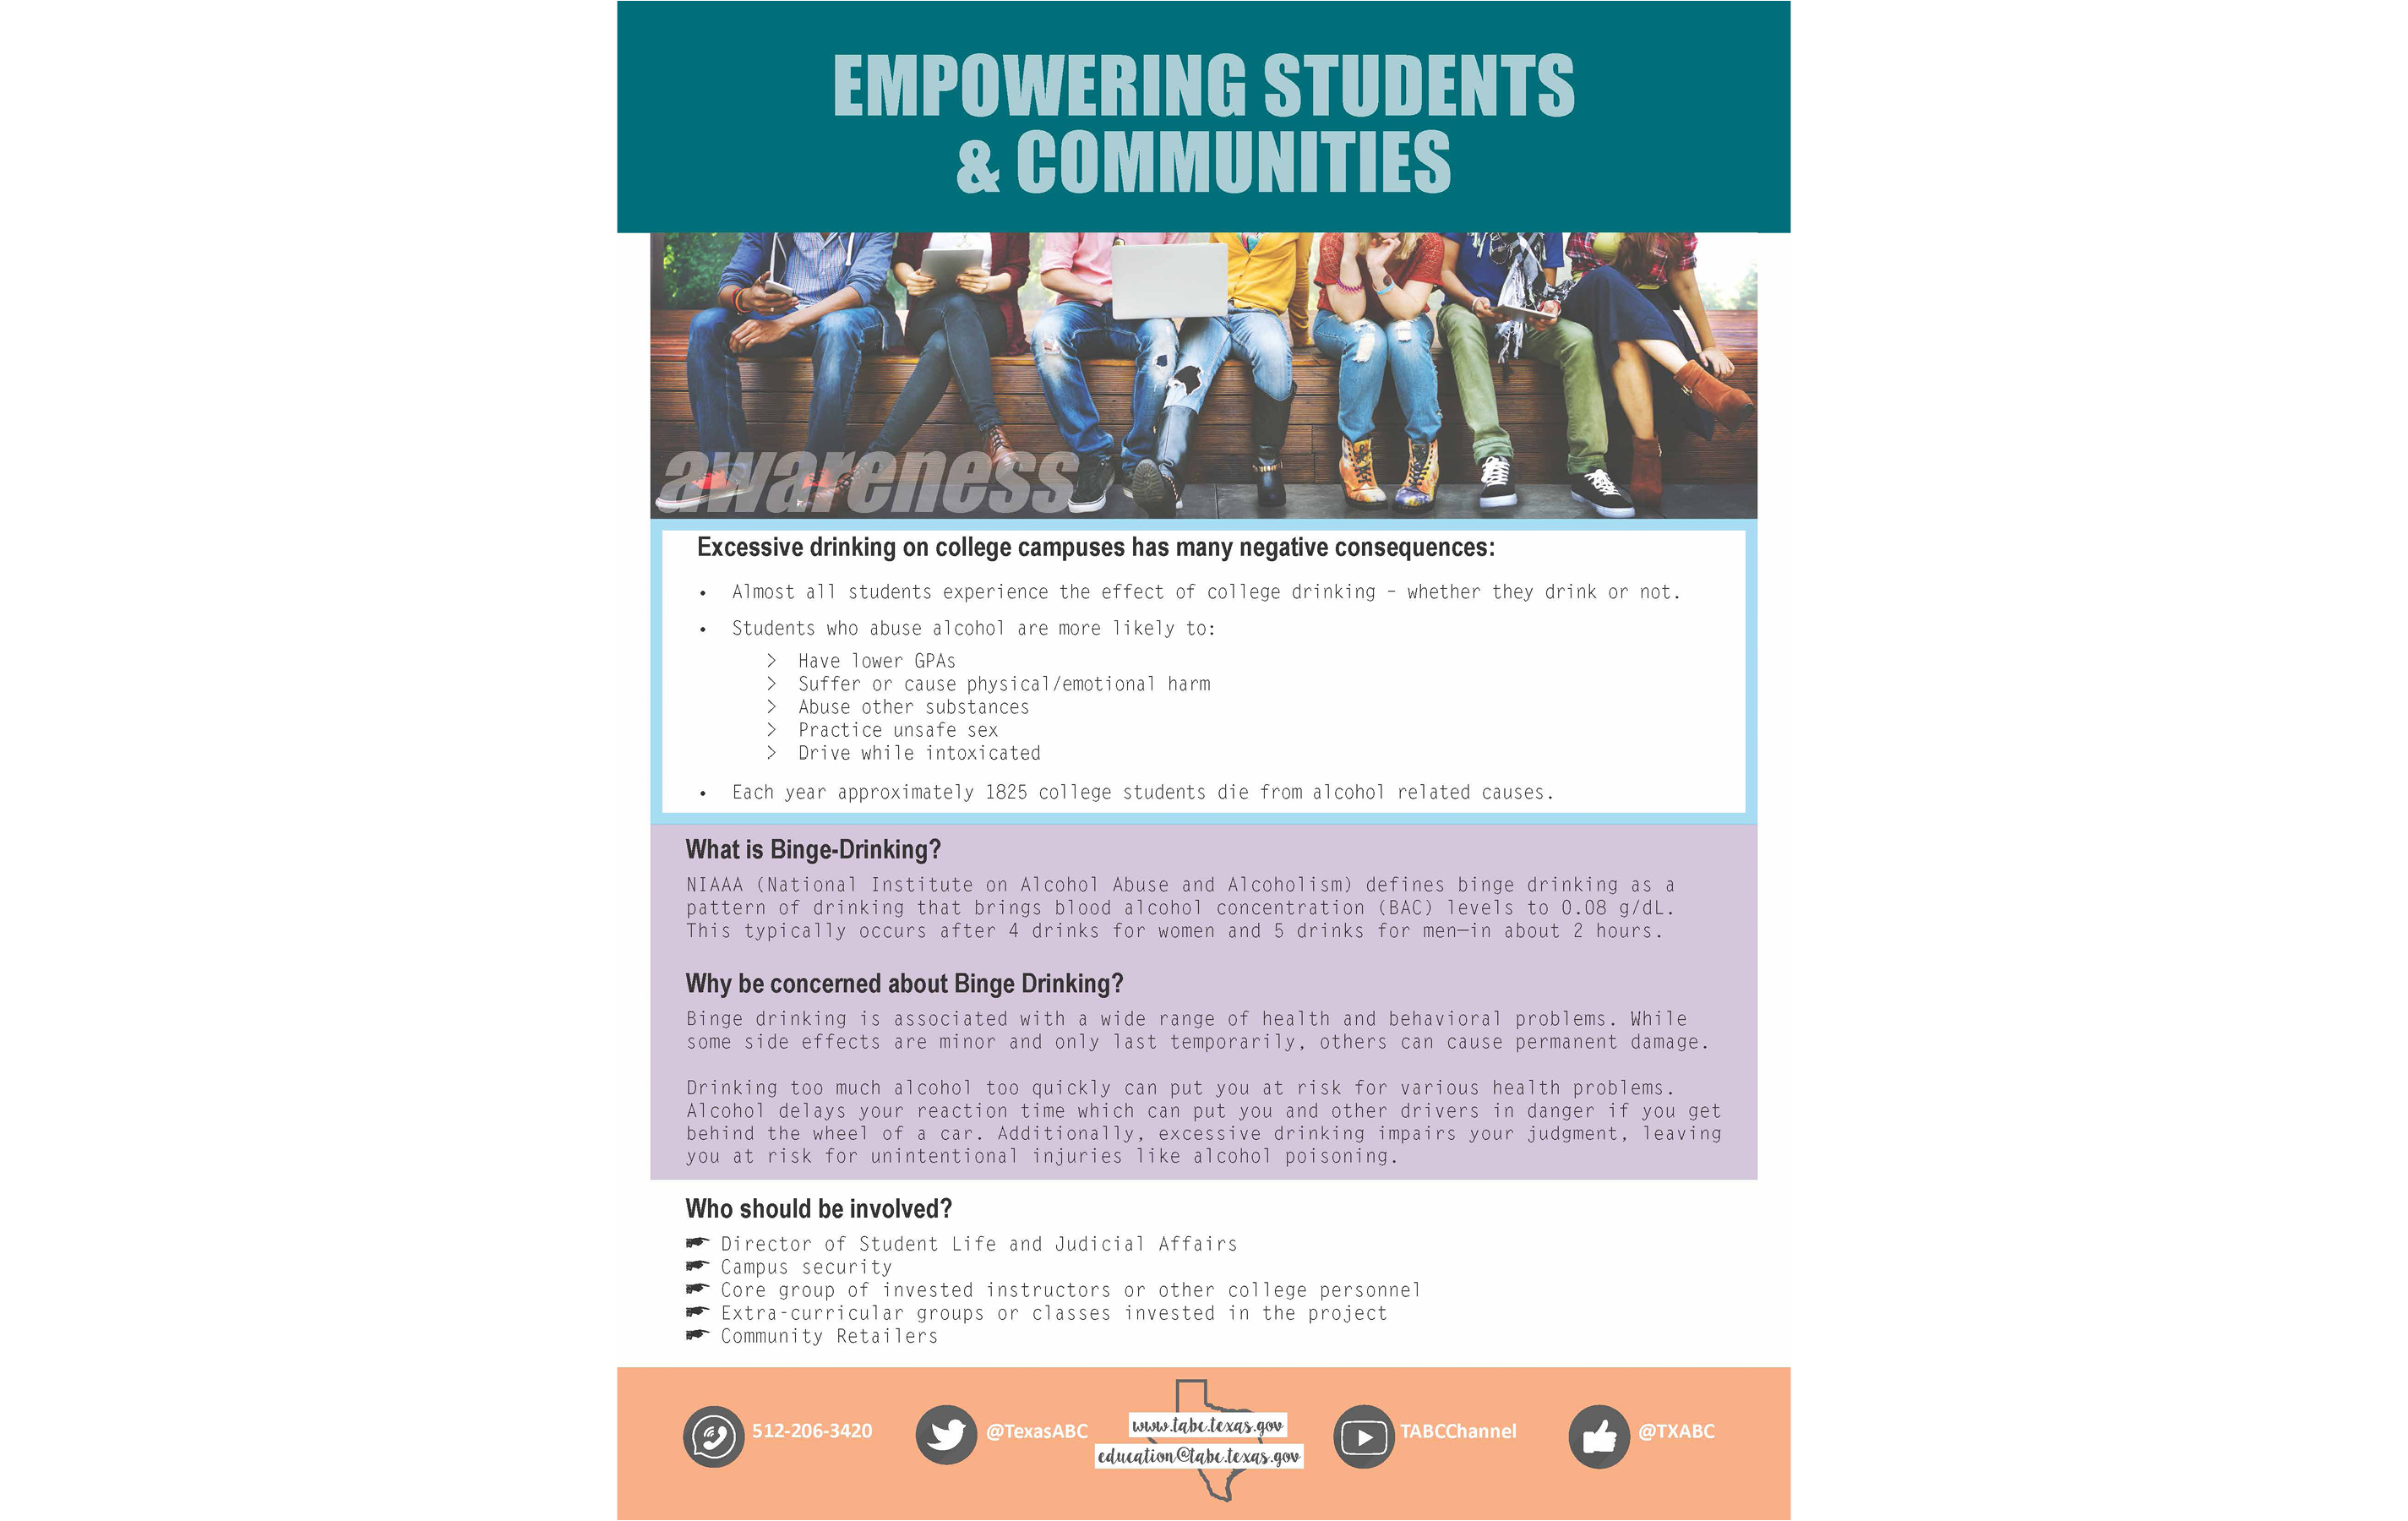 Empowering Students & Communities Flyer